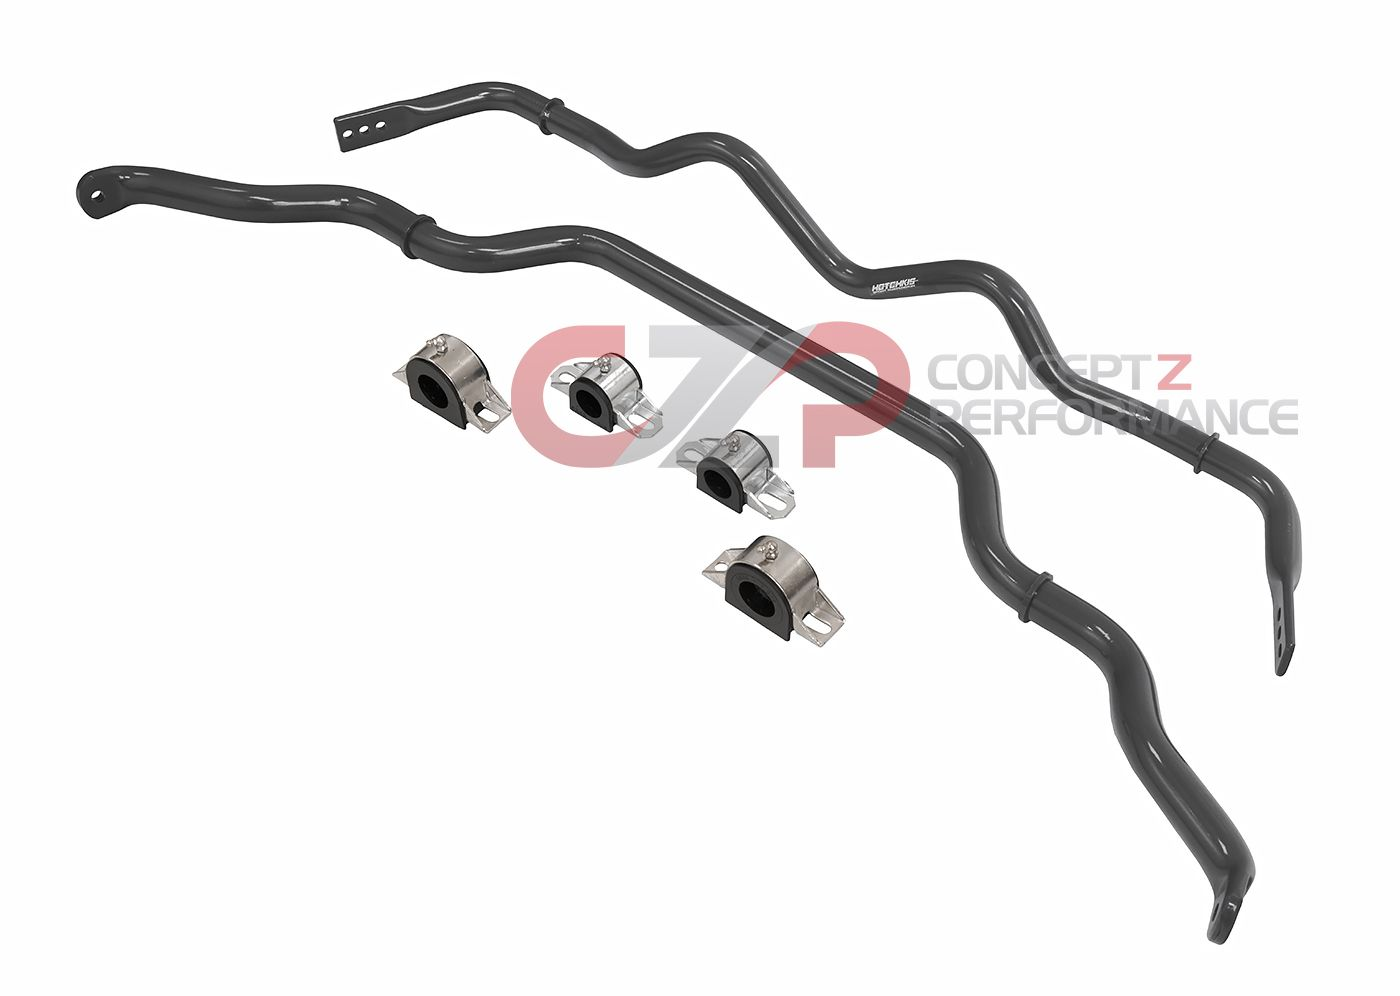 Hotchkis Sport Sway Bar Set - Infiniti Q50 V37, Q60 CV37 AWD - IN STOCK!!!